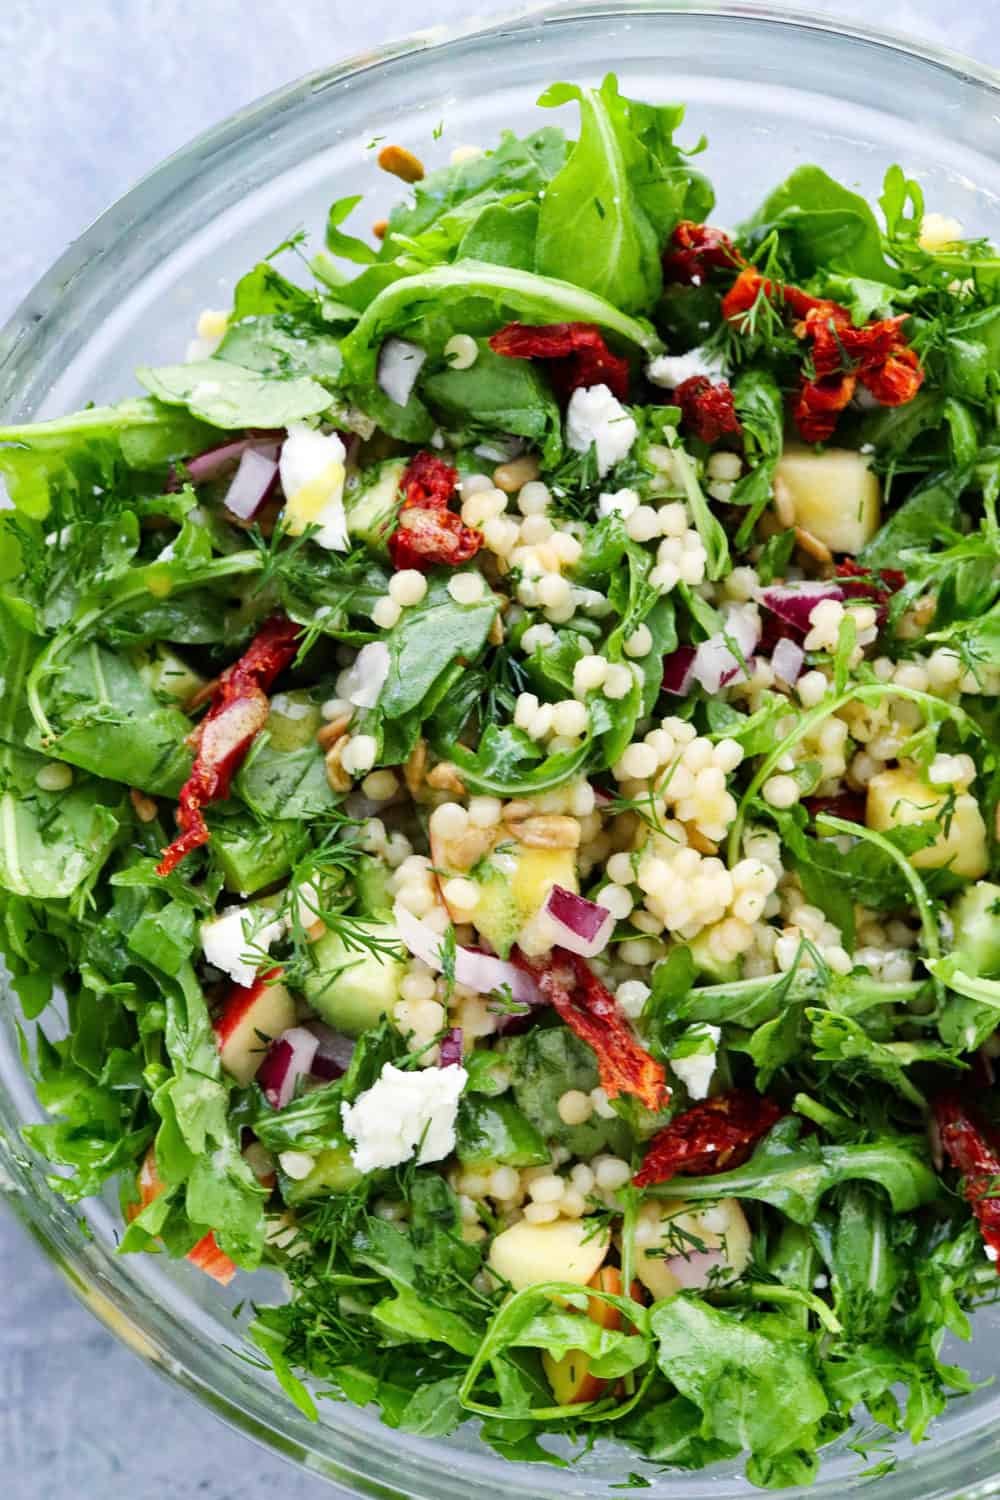 Mixed up couscous salad with arugula and tomatoes on it.